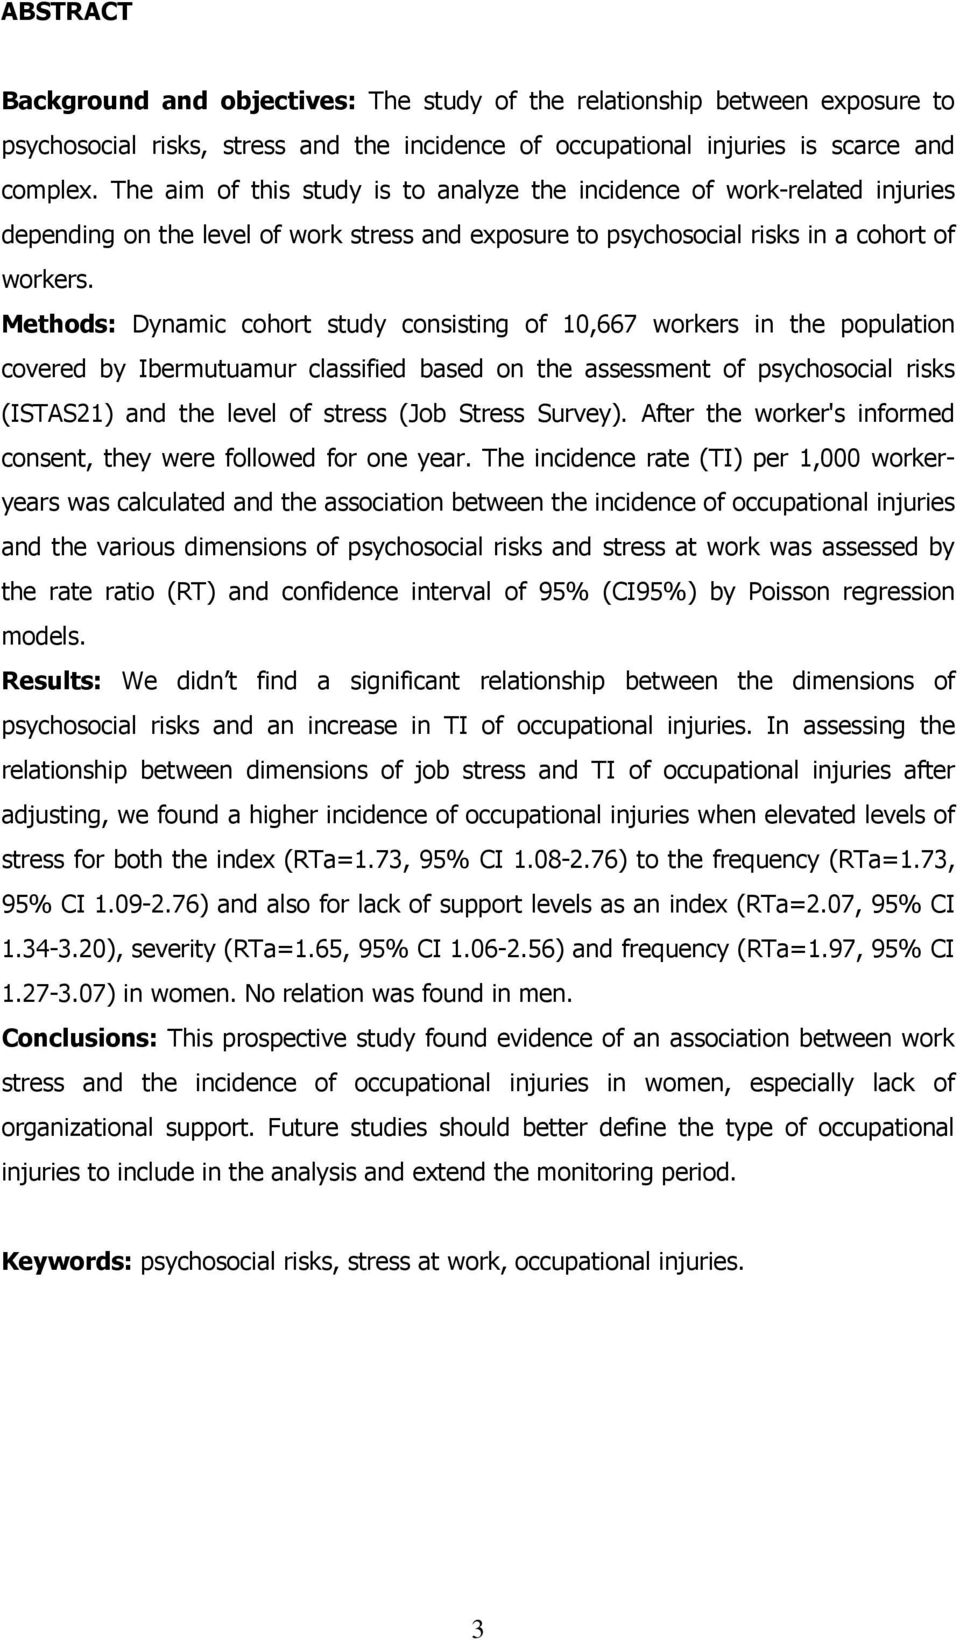 Methods: Dynamic cohort study consisting of 10,667 workers in the population covered by Ibermutuamur classified based on the assessment of psychosocial risks (ISTAS21) and the level of stress (Job